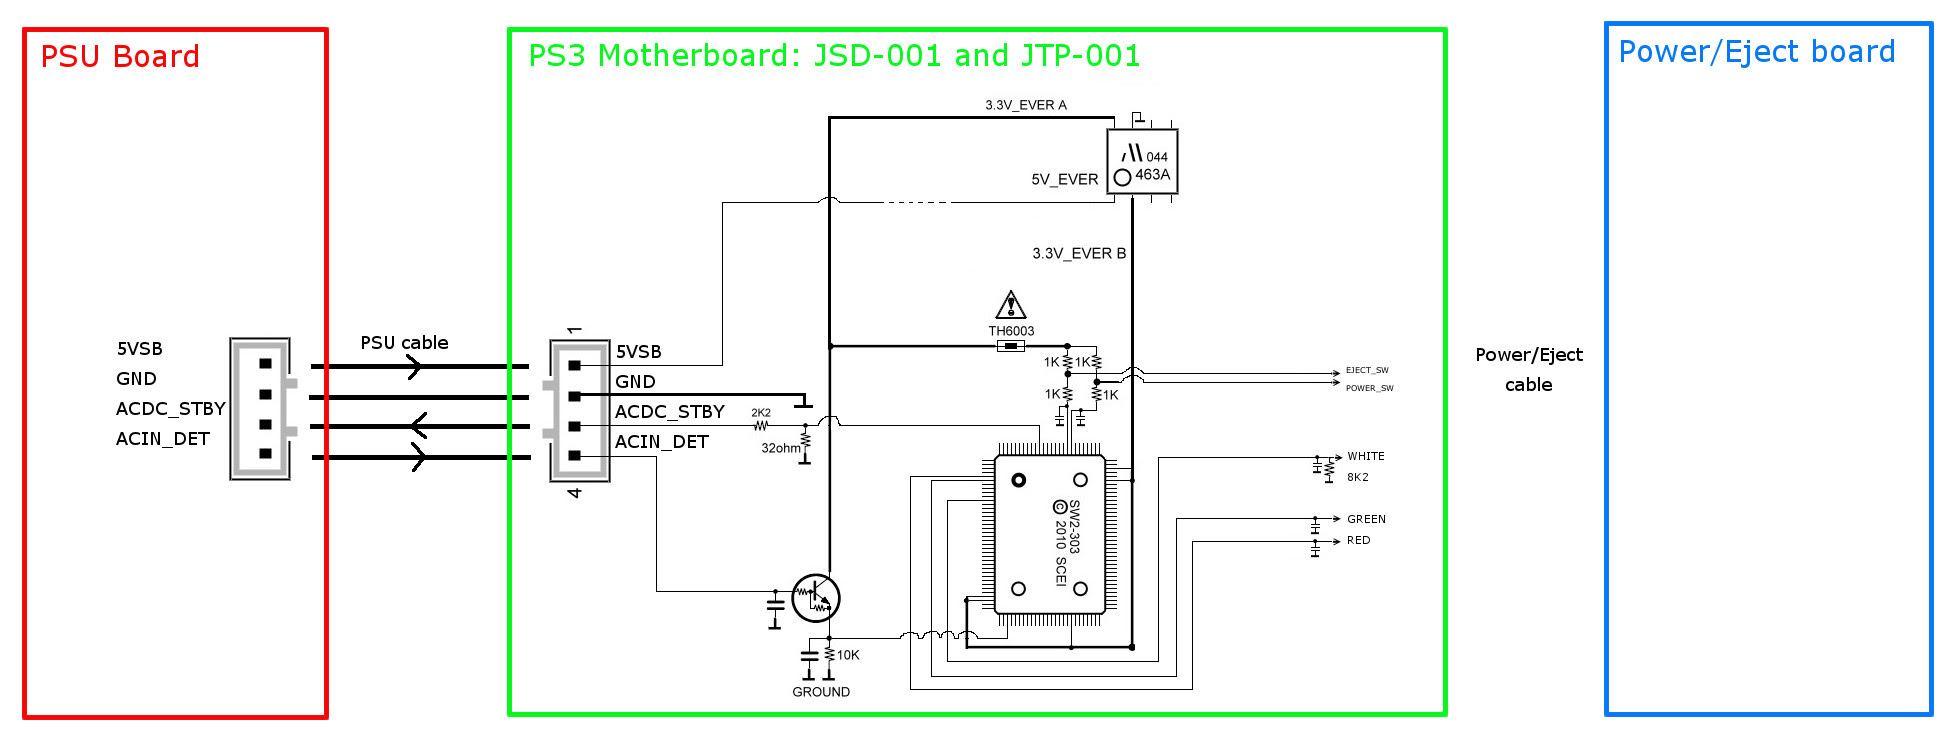 12V Xbox 360 Slim Power Supply Wiring Diagram from lh5.googleusercontent.com